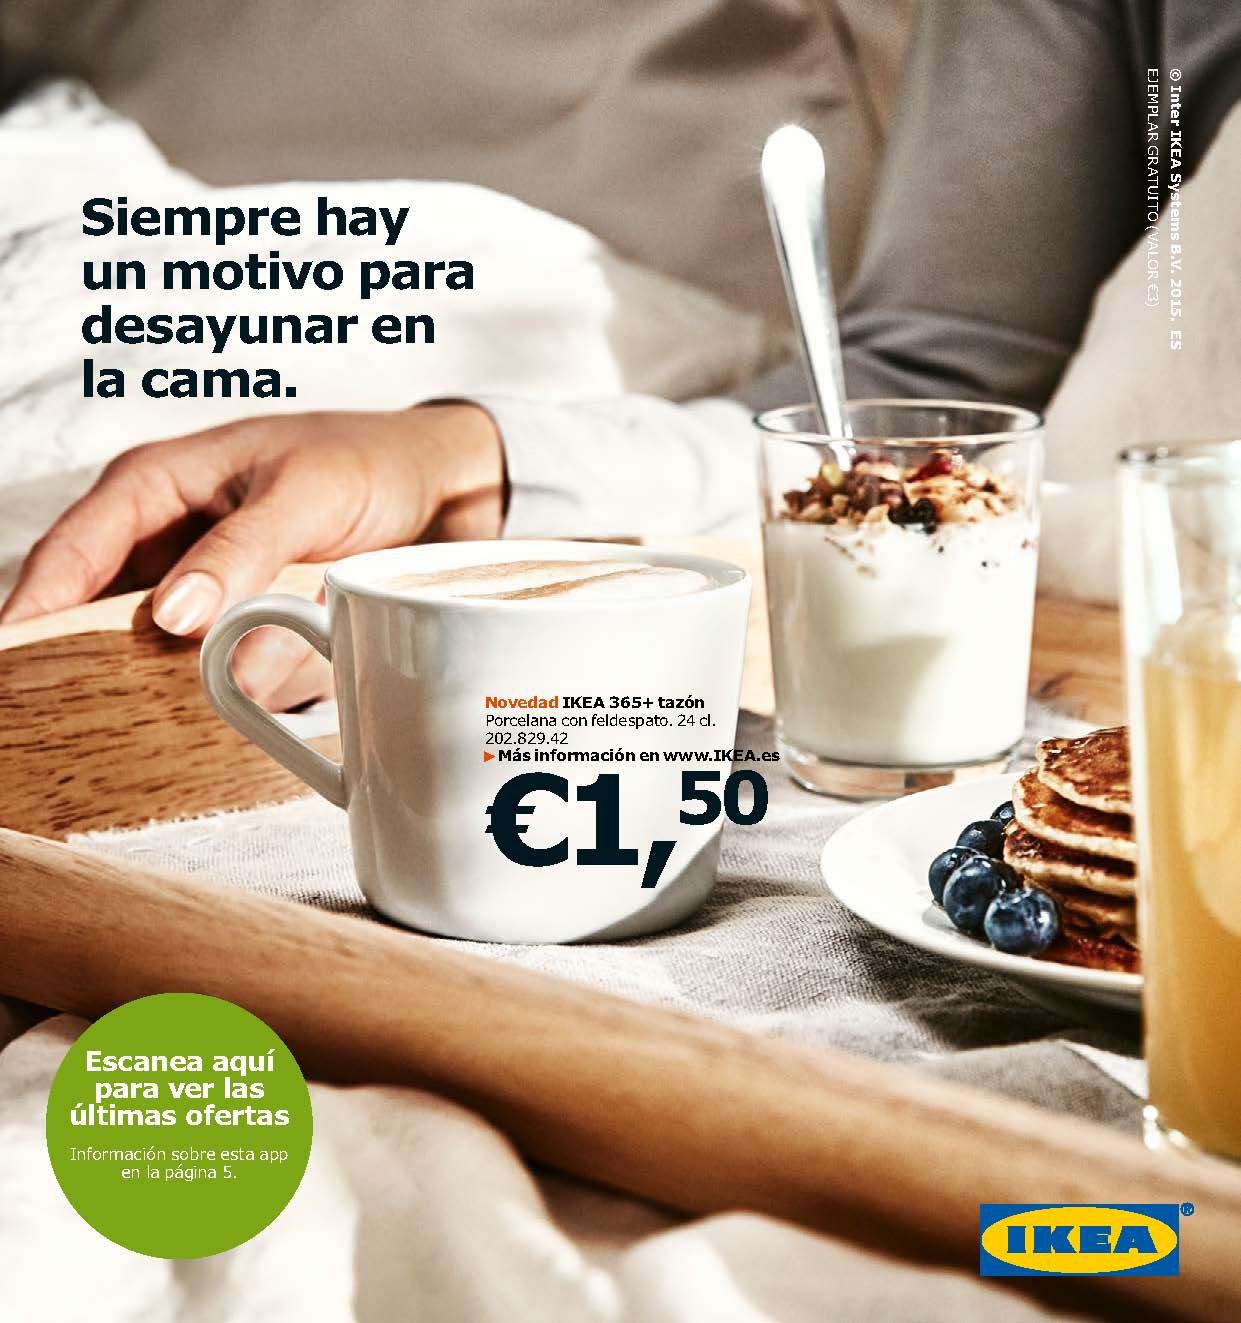 catalogo decorar con ikea 2016 es_Page_165